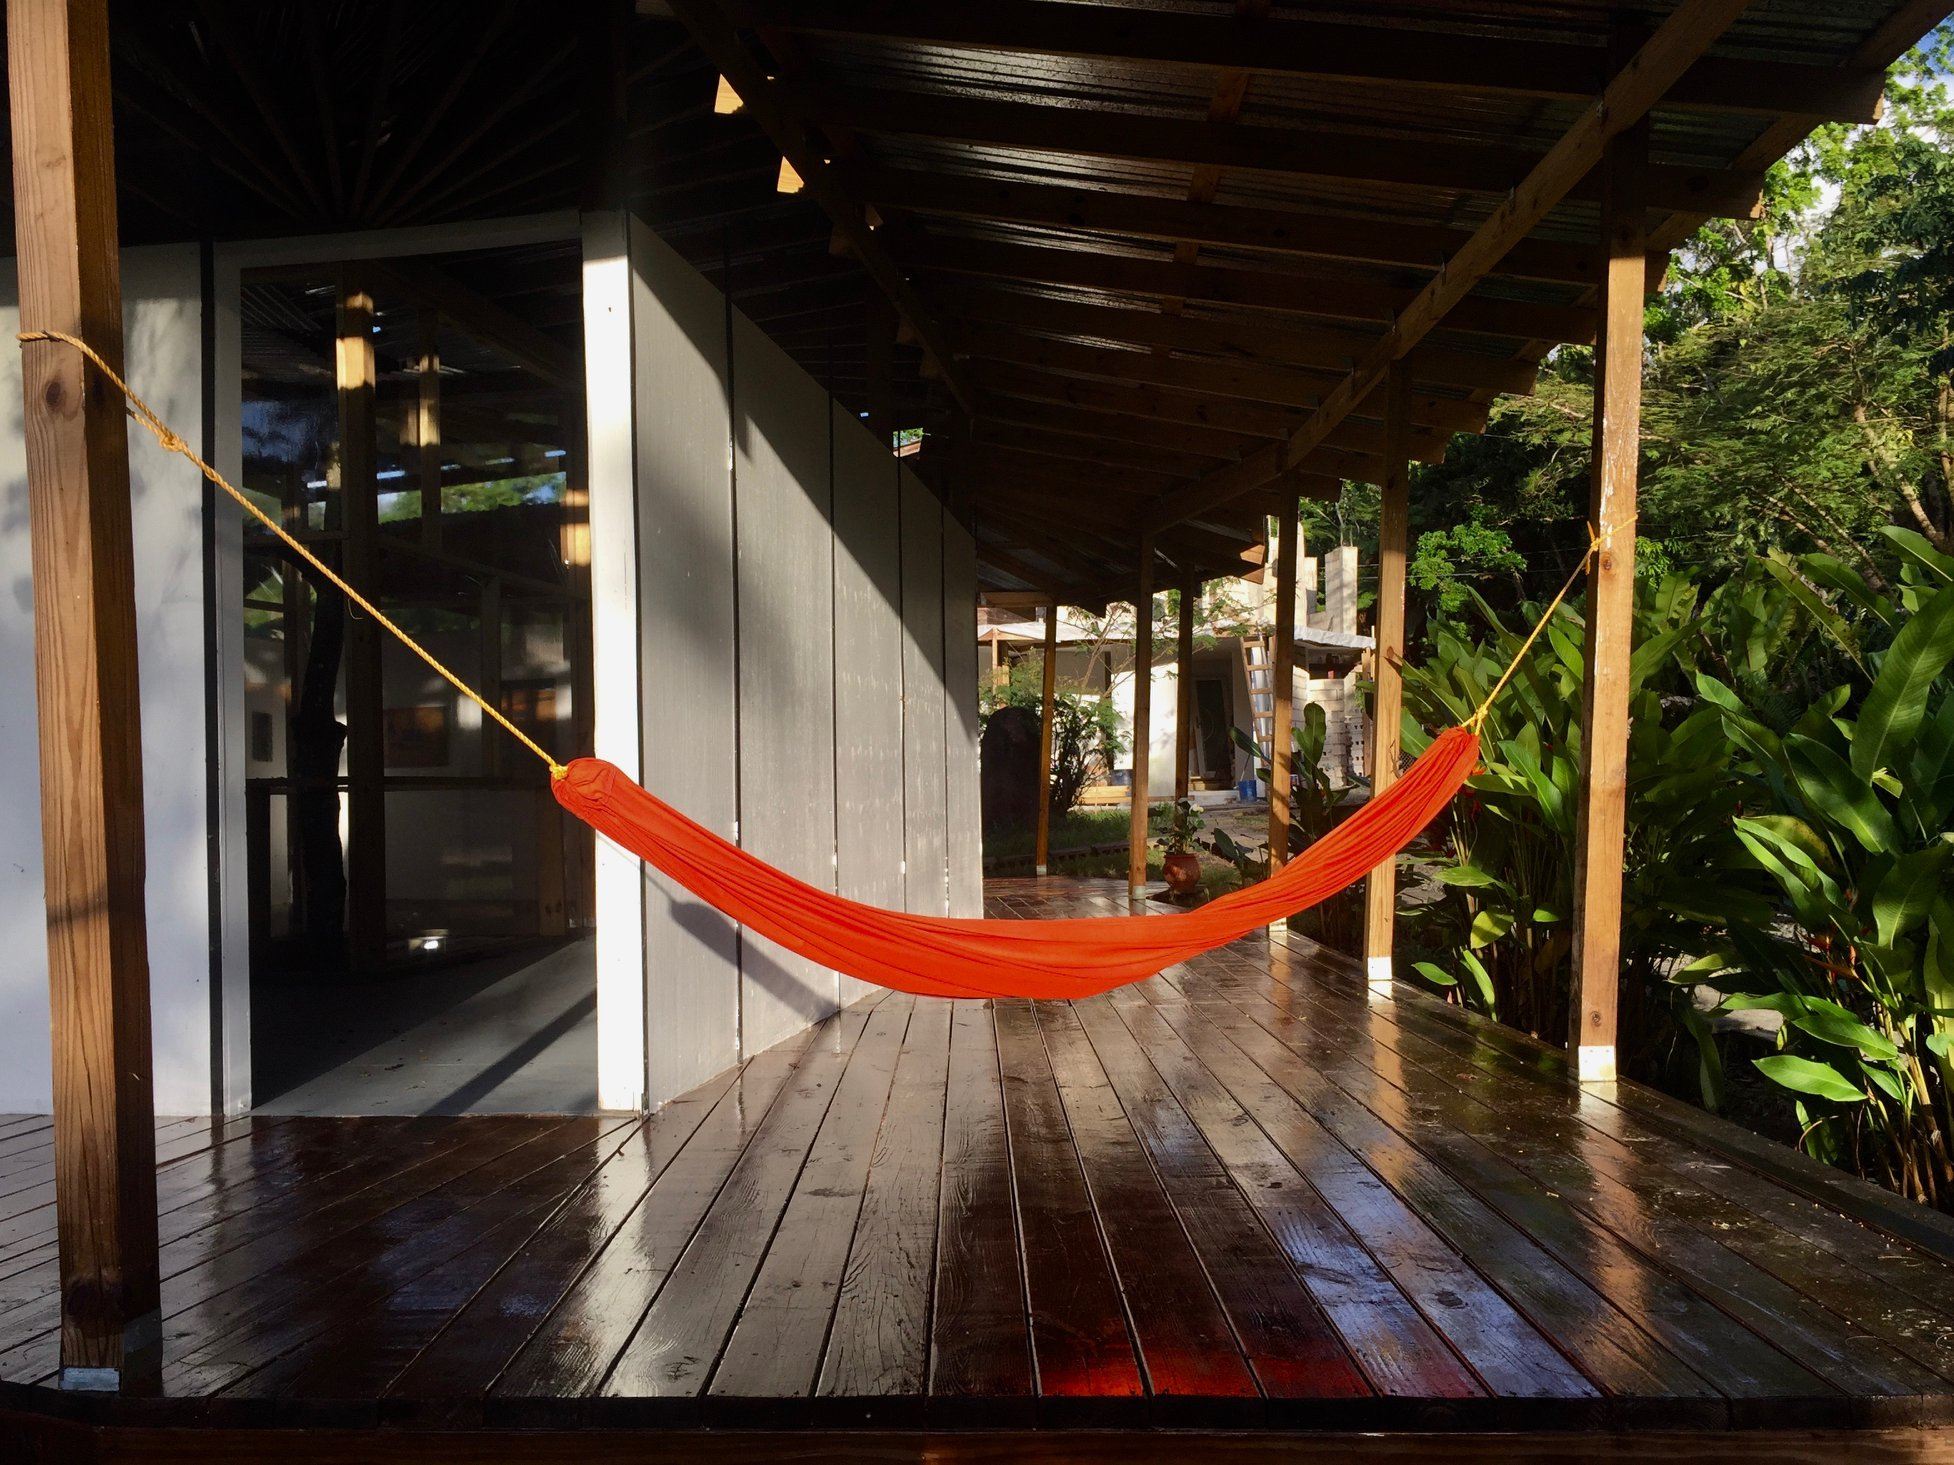 Papo Colo_Pangea Art Republic_Artist Studio in the Rainforest_hammock.jpg